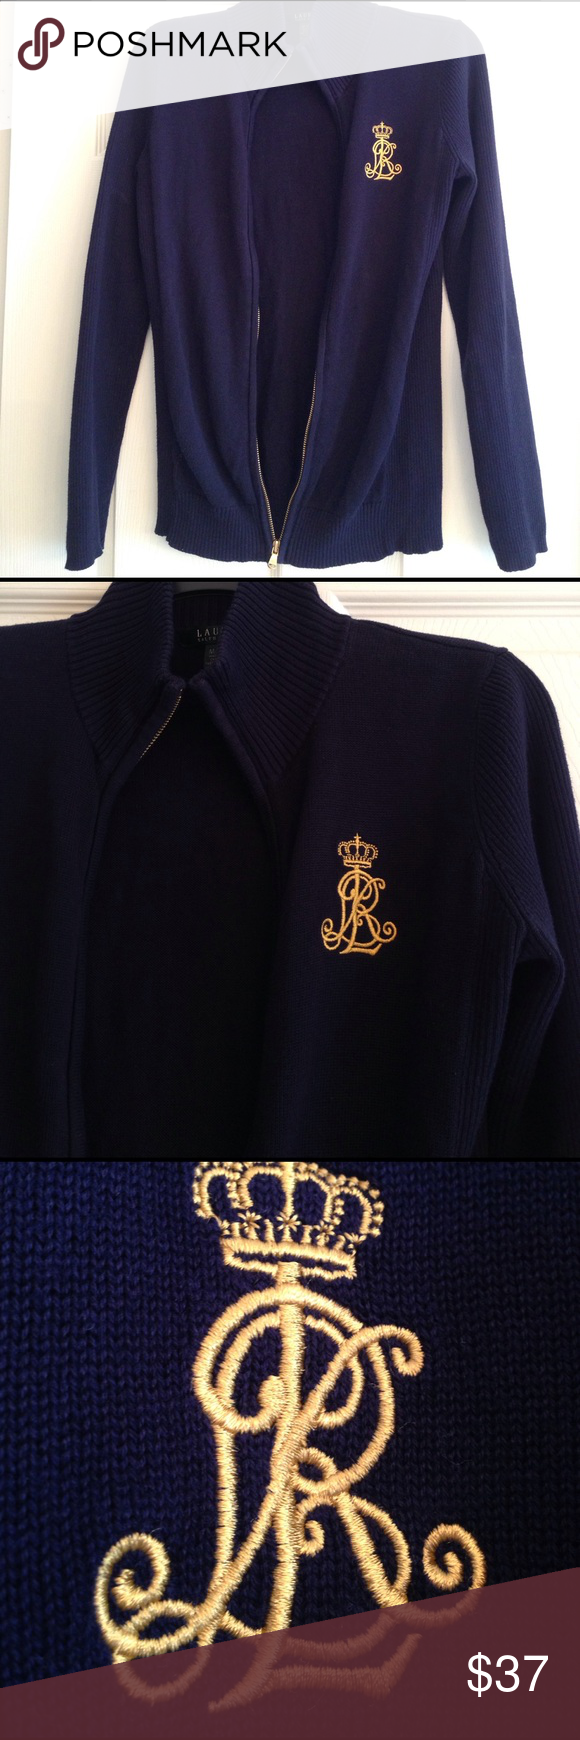 RALPH LAUREN NAVY BLUE INSIGNIA ZIP JACKET Beautiful dark navy blue zip up knit jacket in 100% Cotton for cool Spring days. Pretty embroidered insignia and goldtone zipper.. Really gorgeous!! In great condition. Lauren Ralph Lauren Jackets & Coats